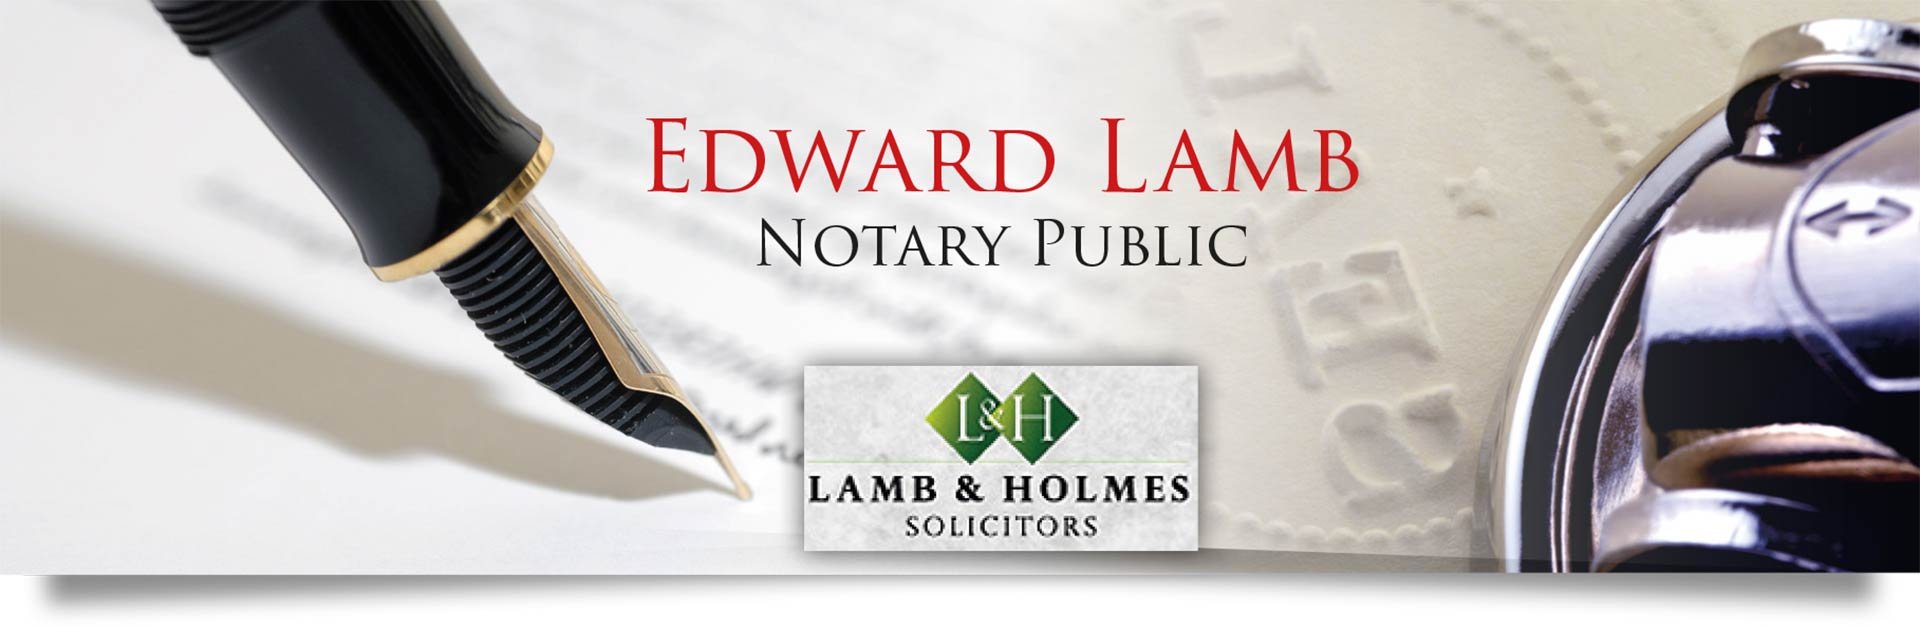 how to become a notary public uk